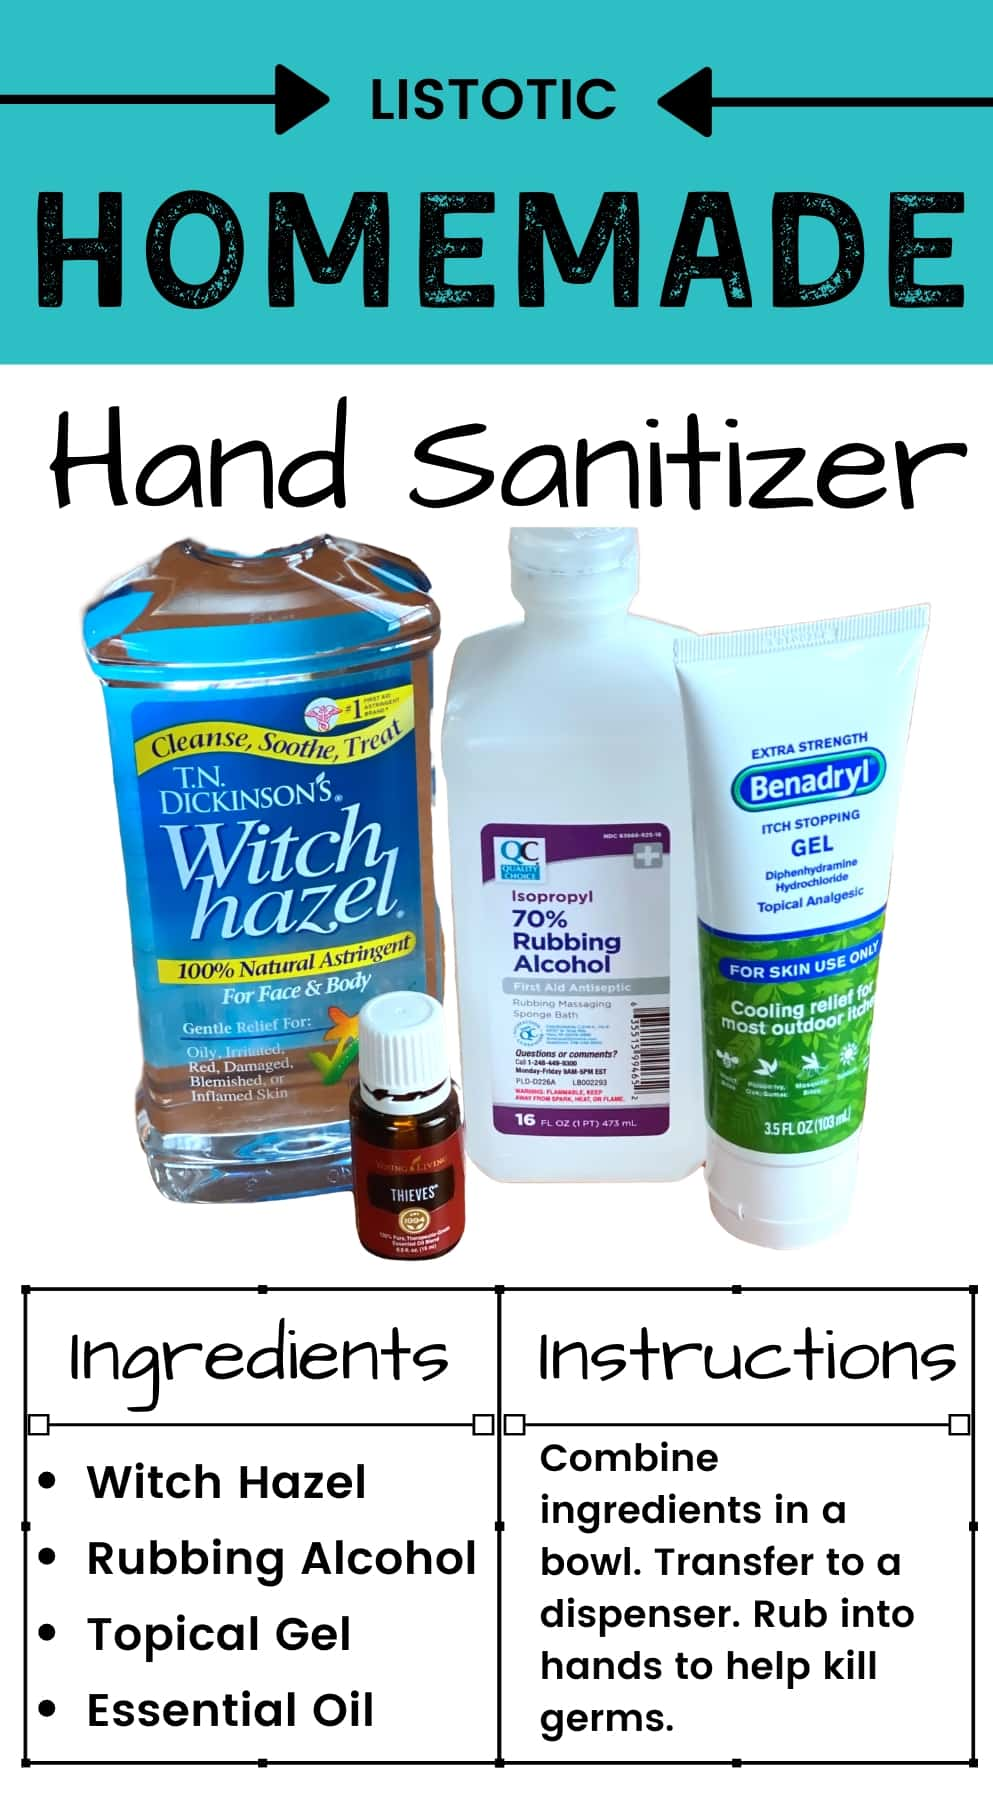 ingredients to make homemade hand sanitizer